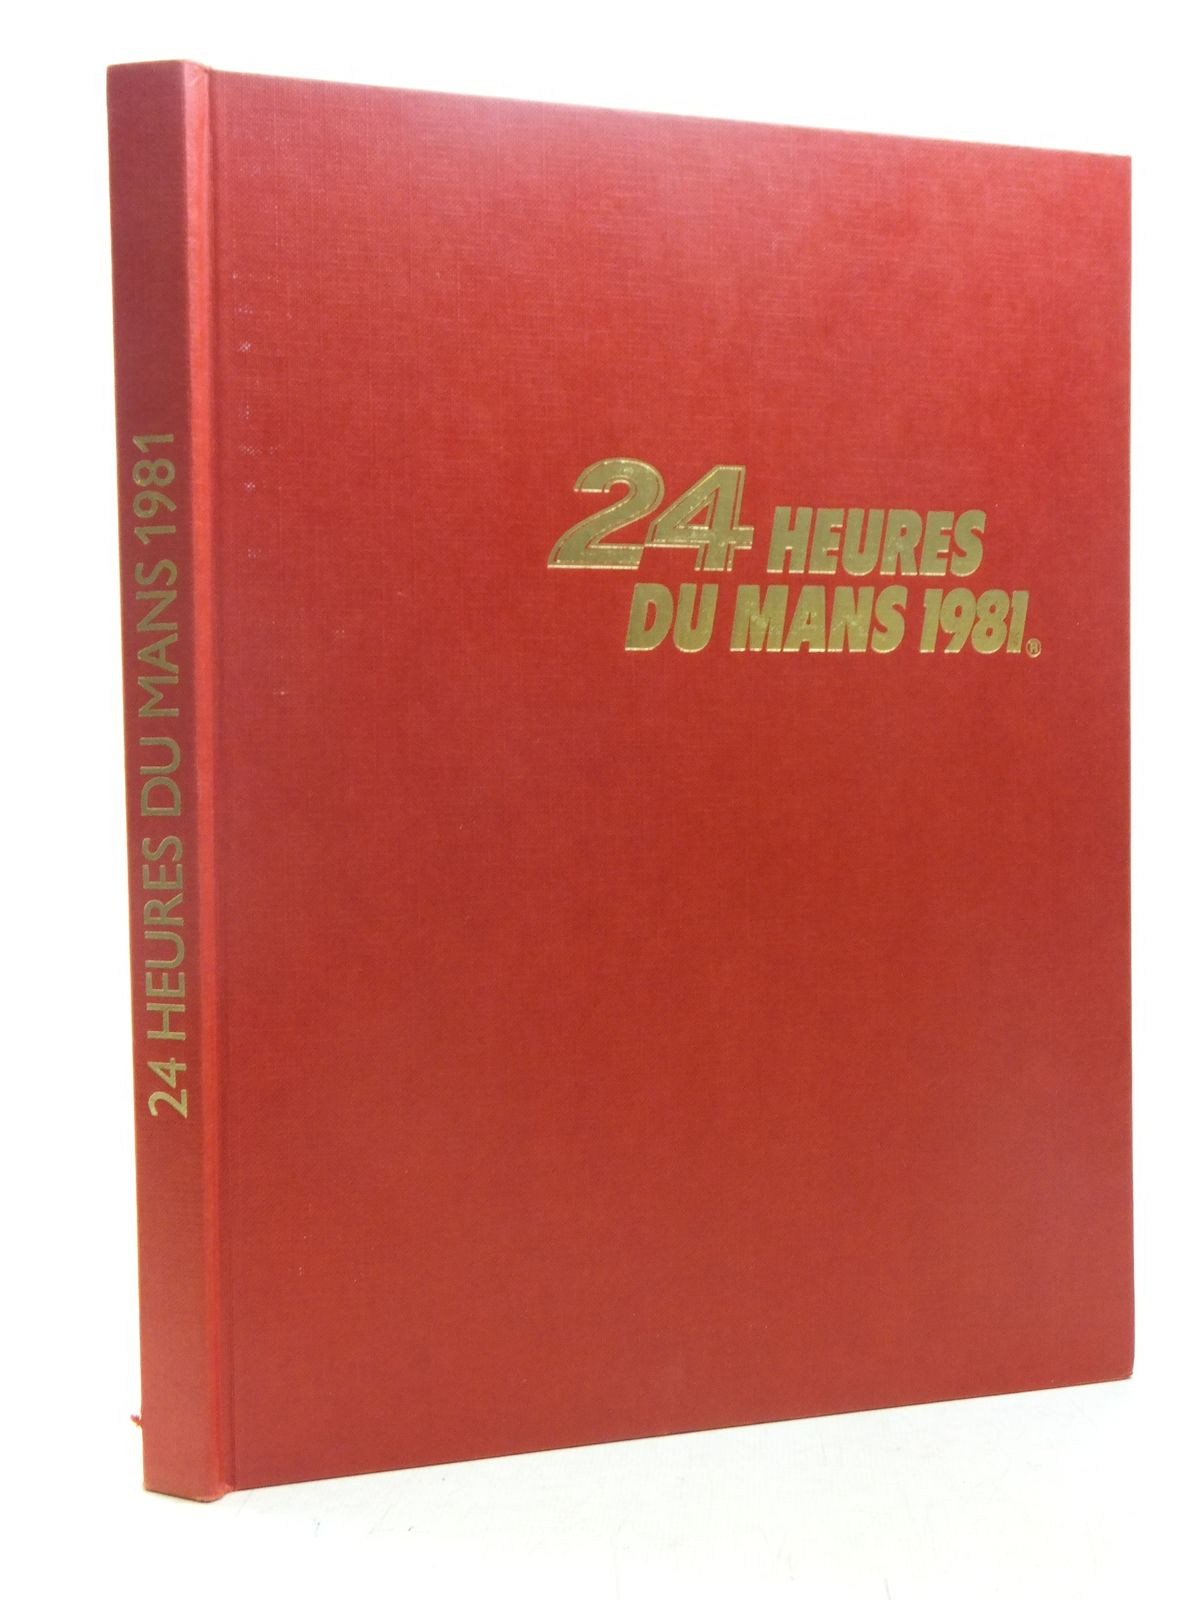 Photo of 24 HEURES DU MANS 1981 written by Teissedre, Jean-Marc Moity, Christian published by Publi-Inter (STOCK CODE: 1607041)  for sale by Stella & Rose's Books